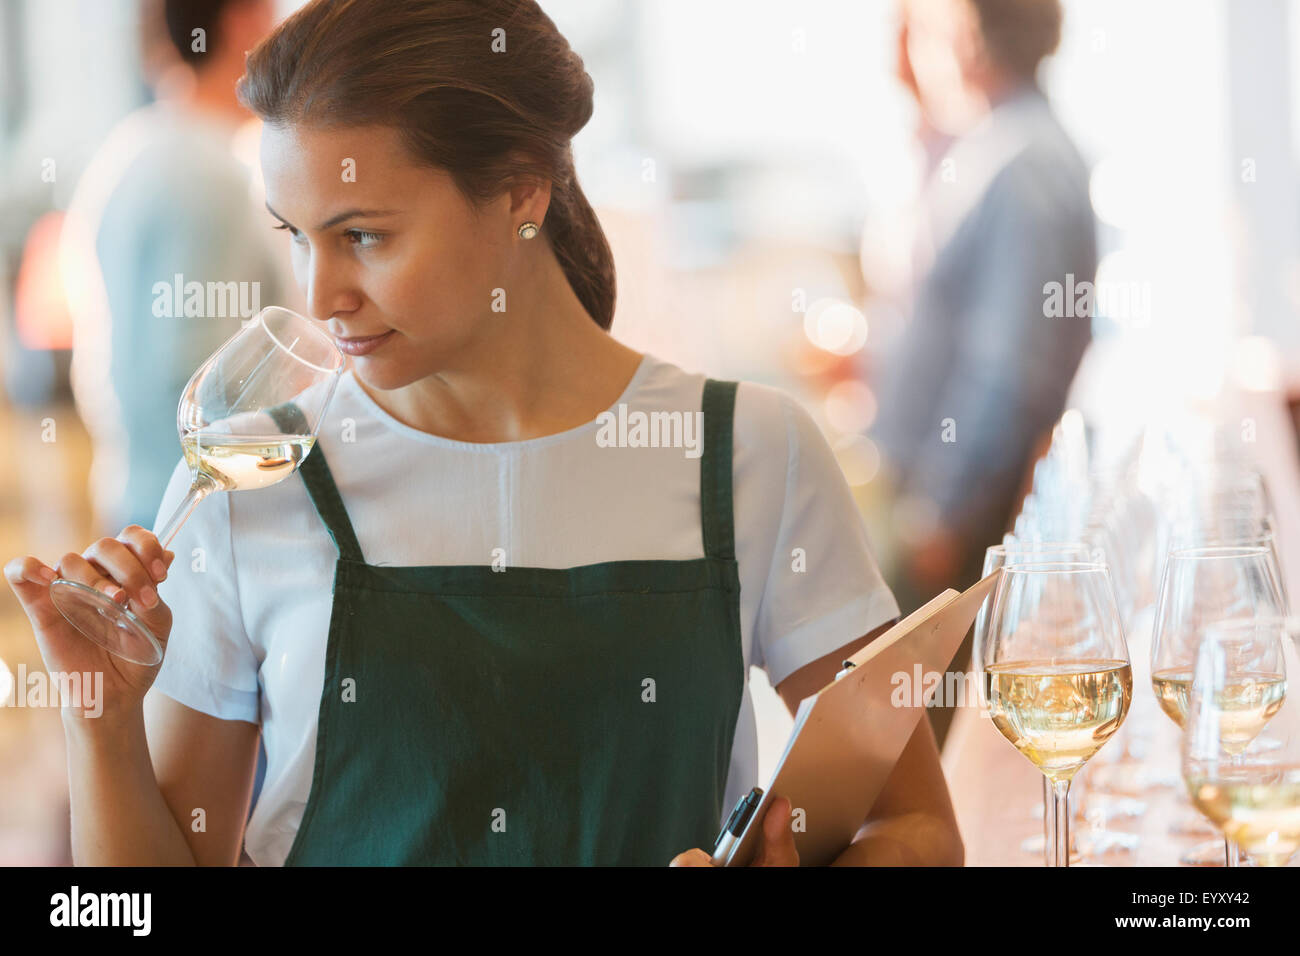 Winery employee smelling white wine in tasting room - Stock Image